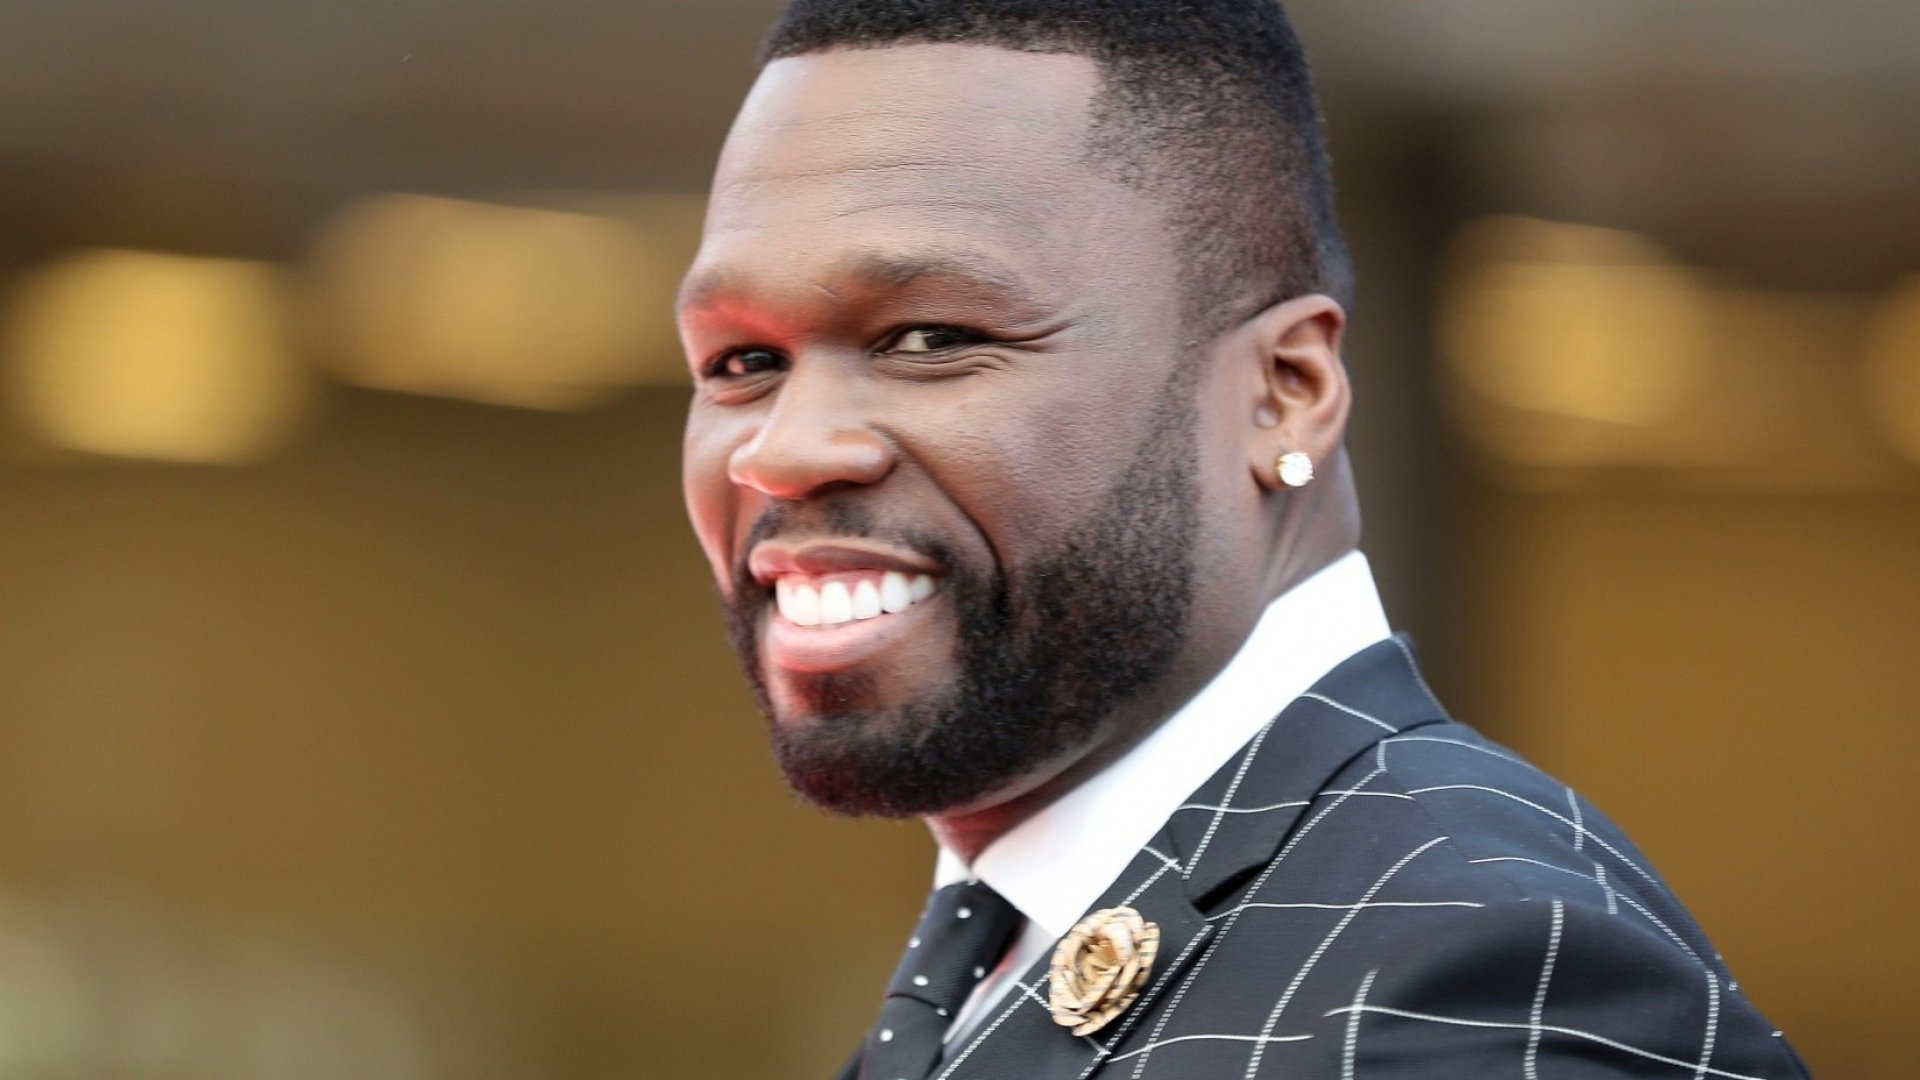 You Can Learn About Entrepreneurship from Rapper 50 Cent | Inc.com